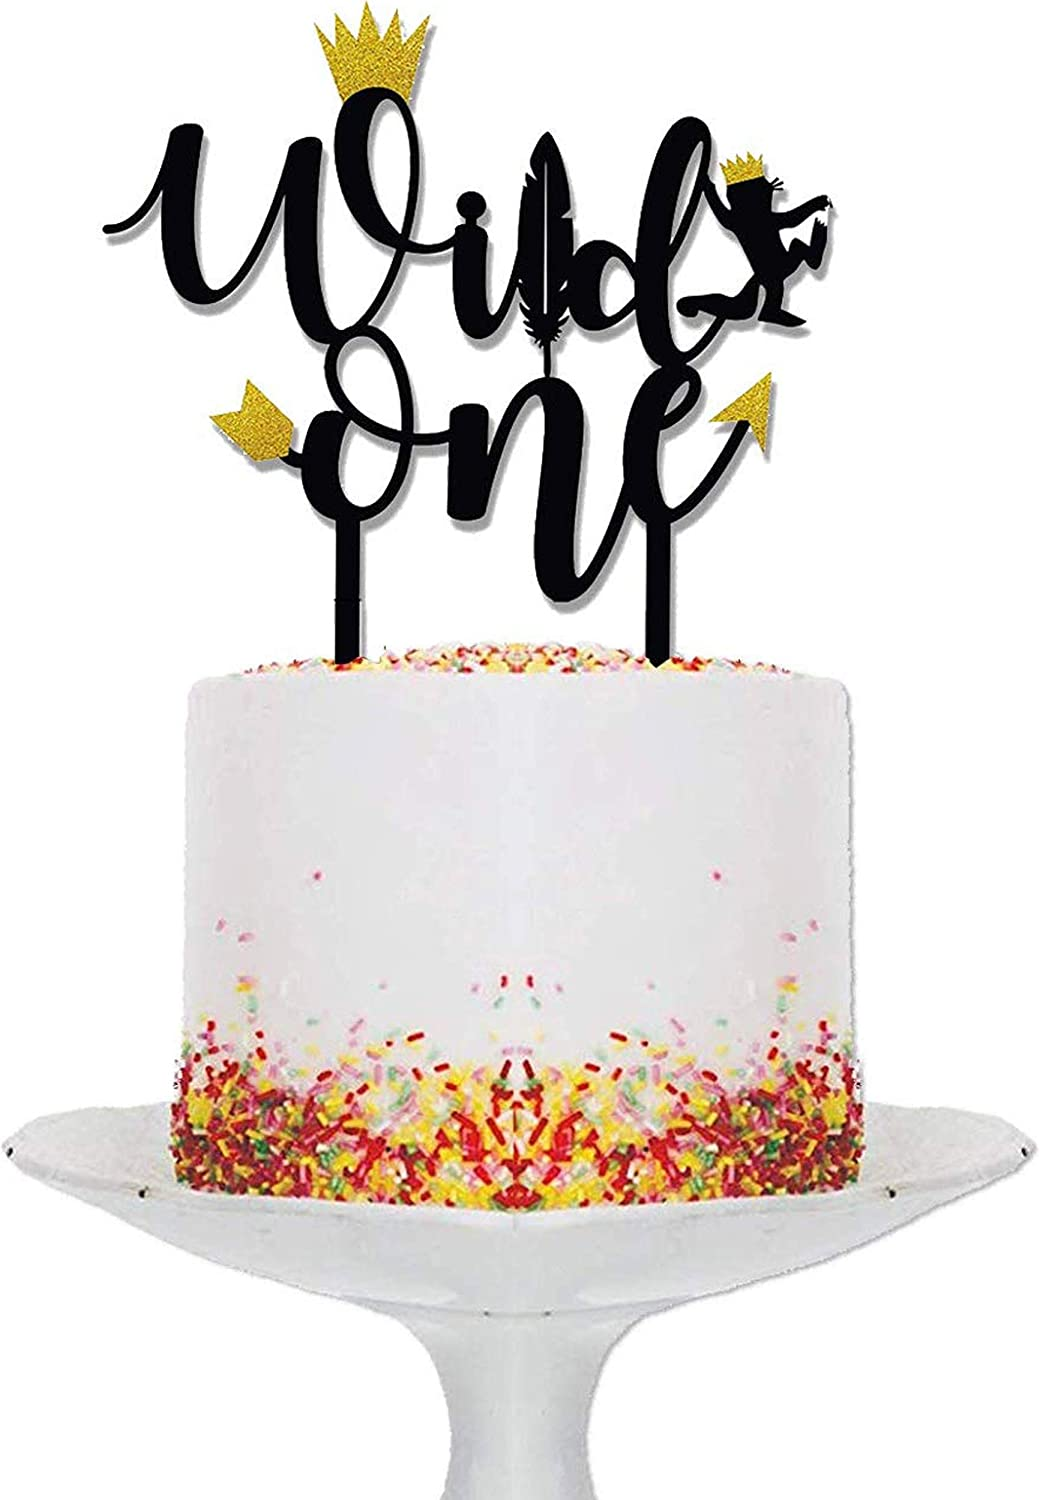 Remarkable Amazon Com Wild One Birthday Decorations I Wild One Cake Topper I Funny Birthday Cards Online Alyptdamsfinfo